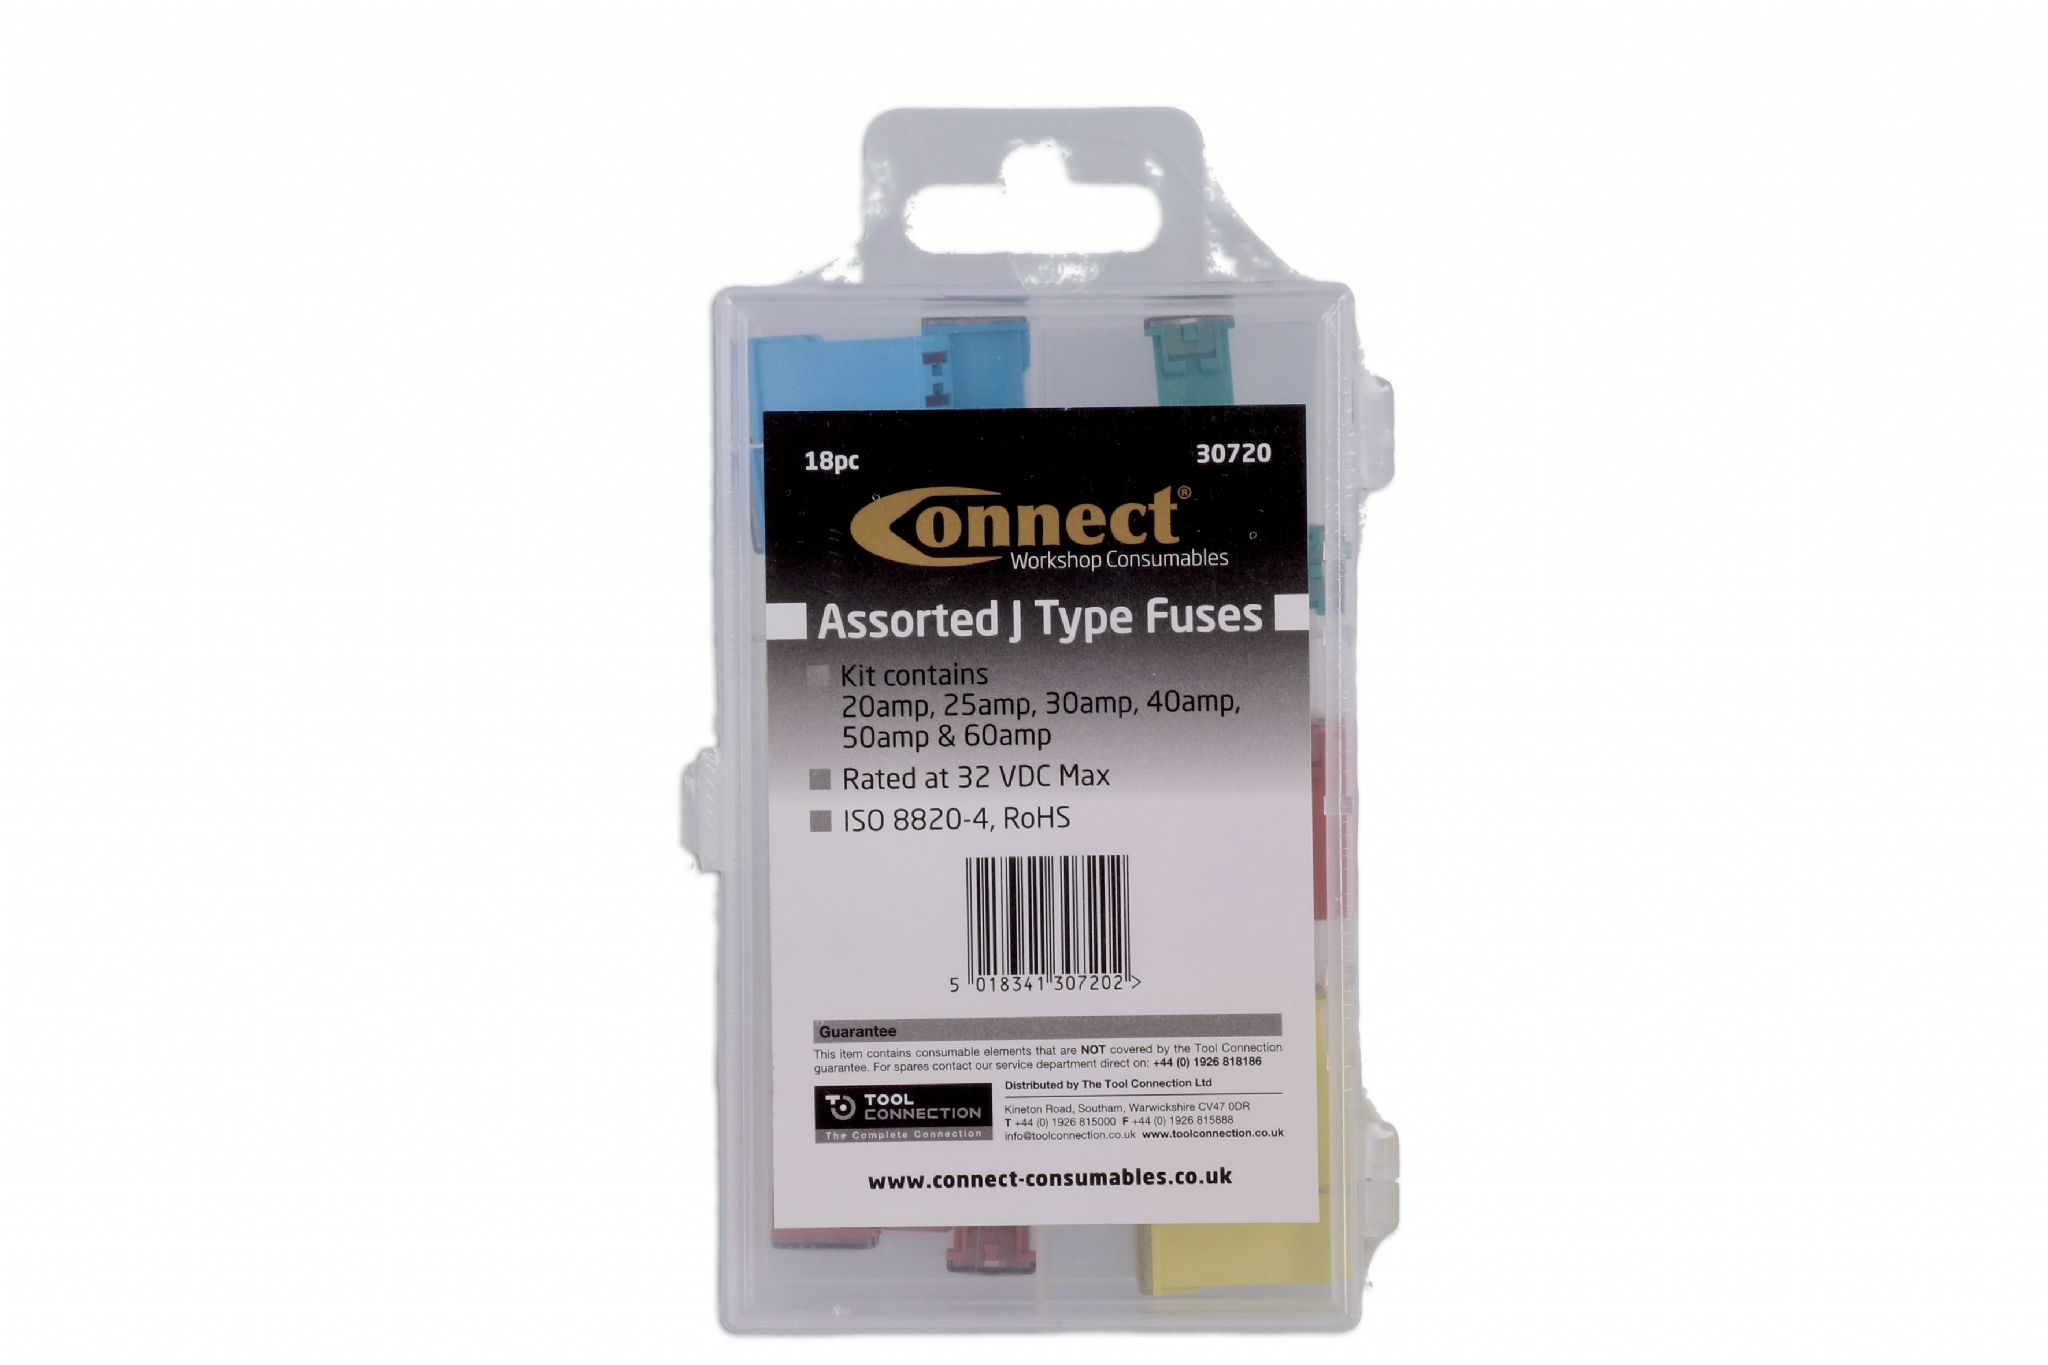 18 Pieces Connect 30720 Assorted J Type Fuses